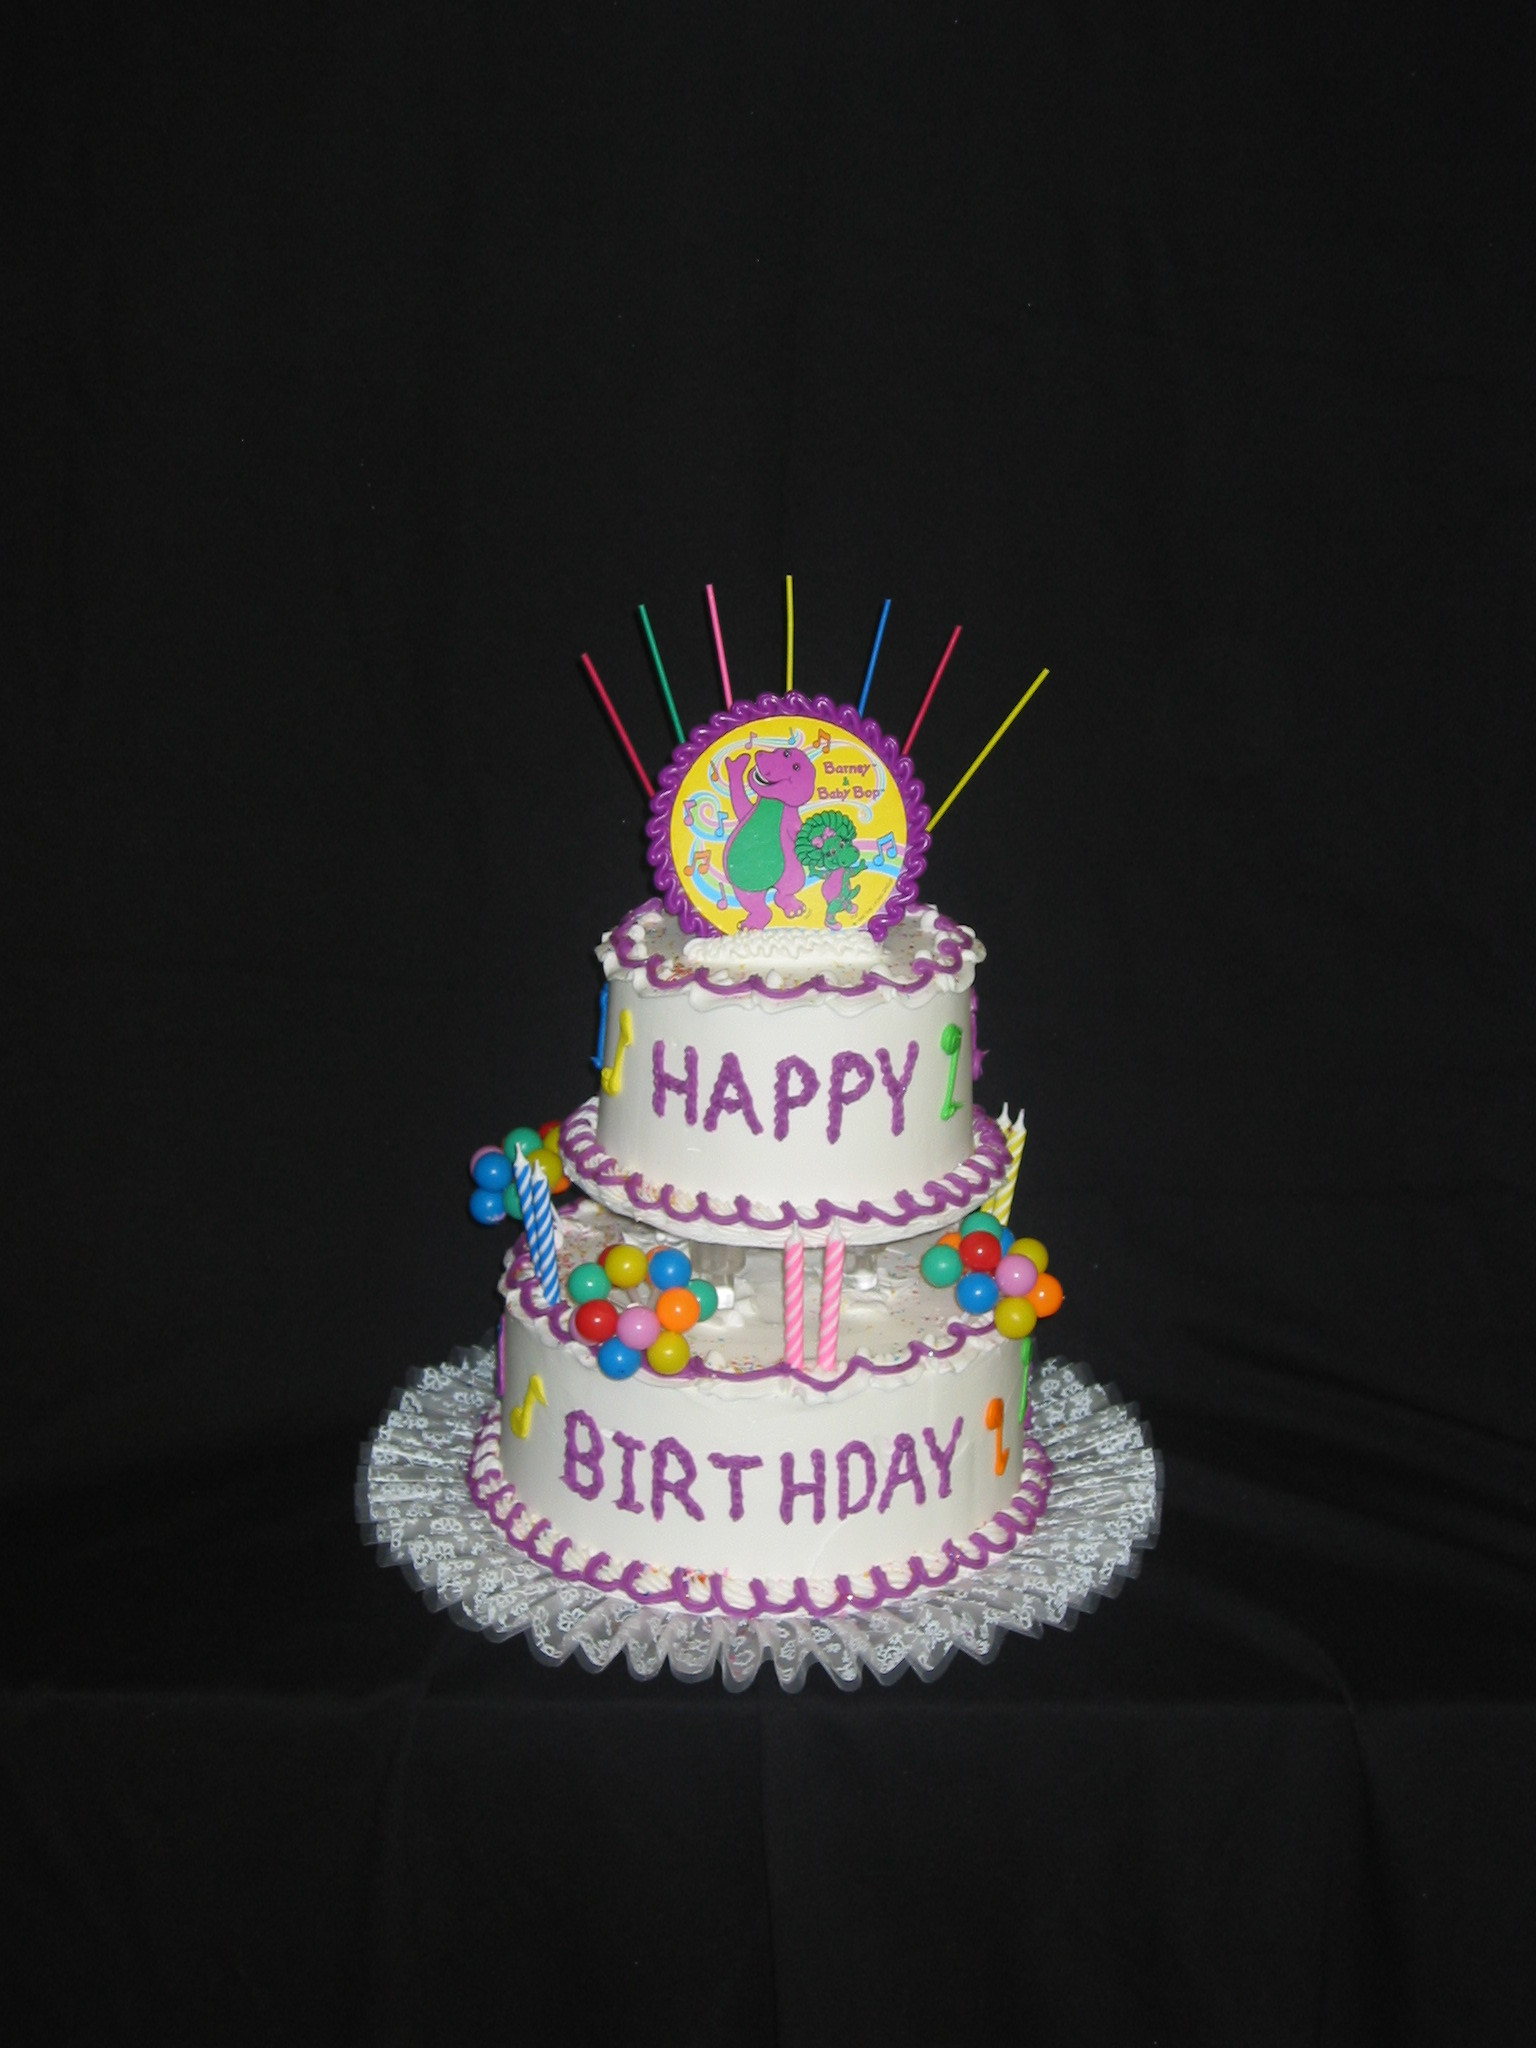 Best ideas about 2 Tier Birthday Cake . Save or Pin Tiered Birthday Cakes Taylor s Bakery Now.